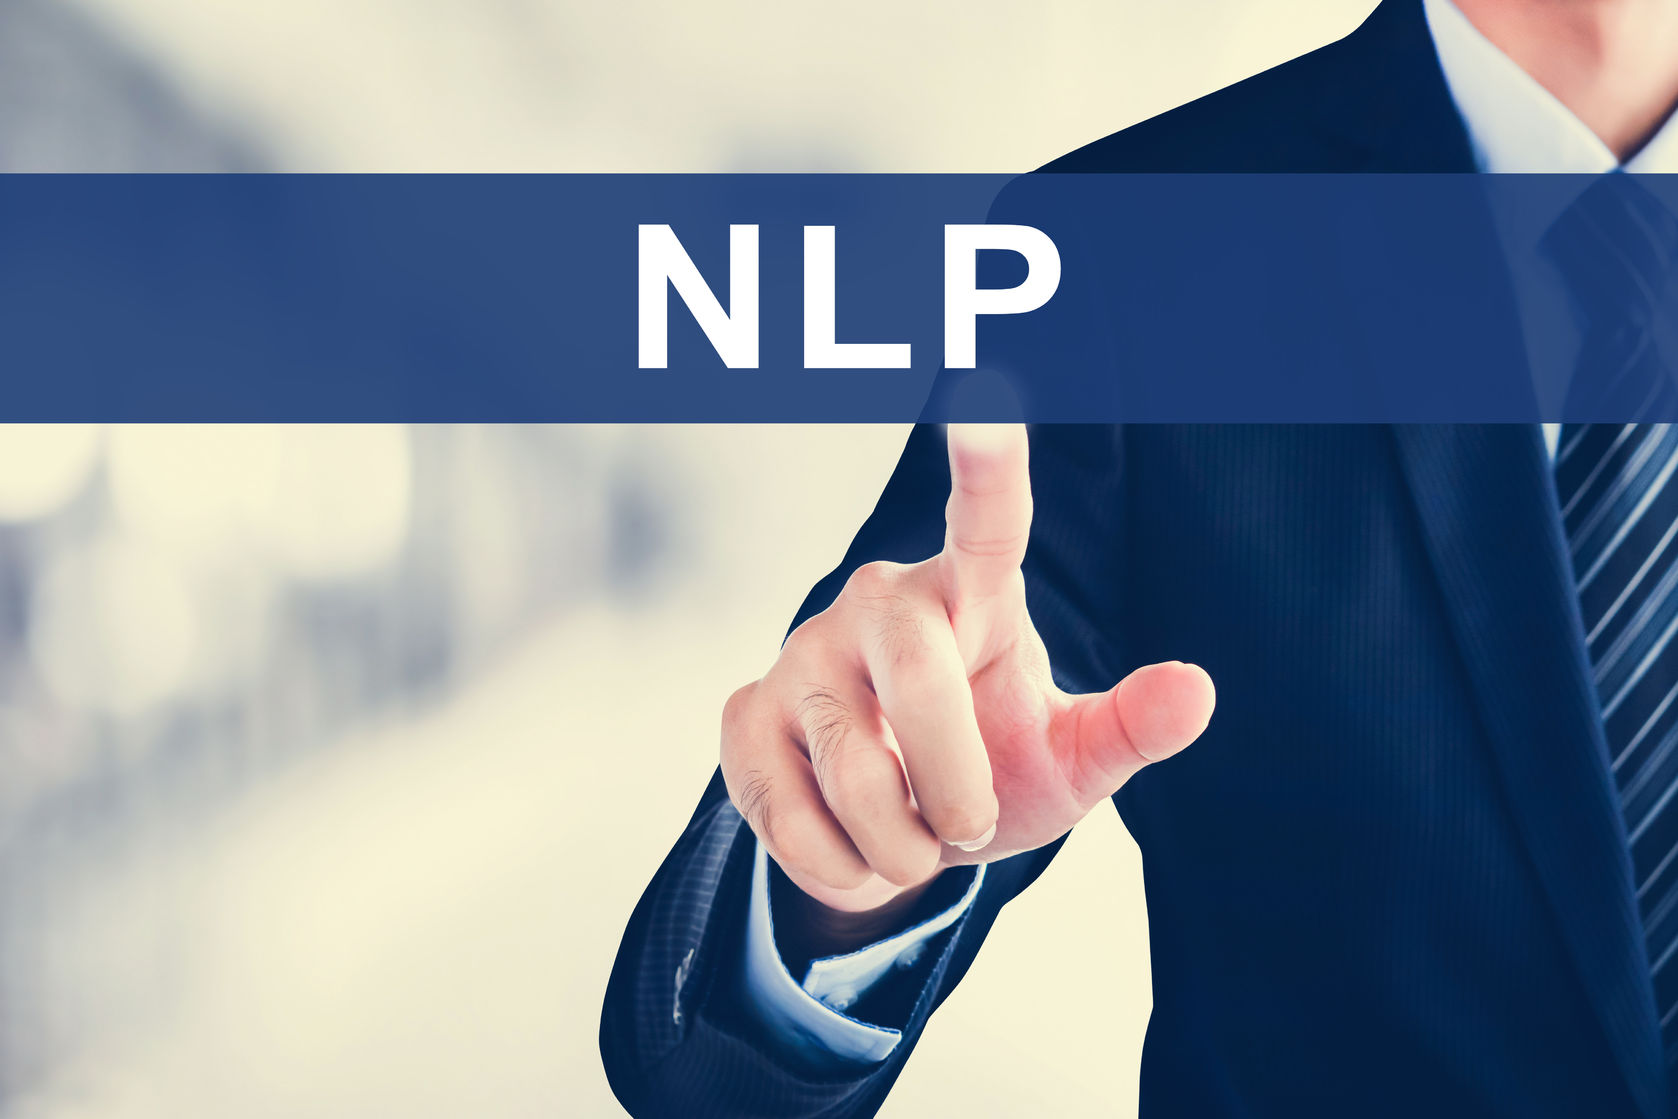 47441189 - businessman hand touching nlp (or neuro linguistic programming) sign virtual screen